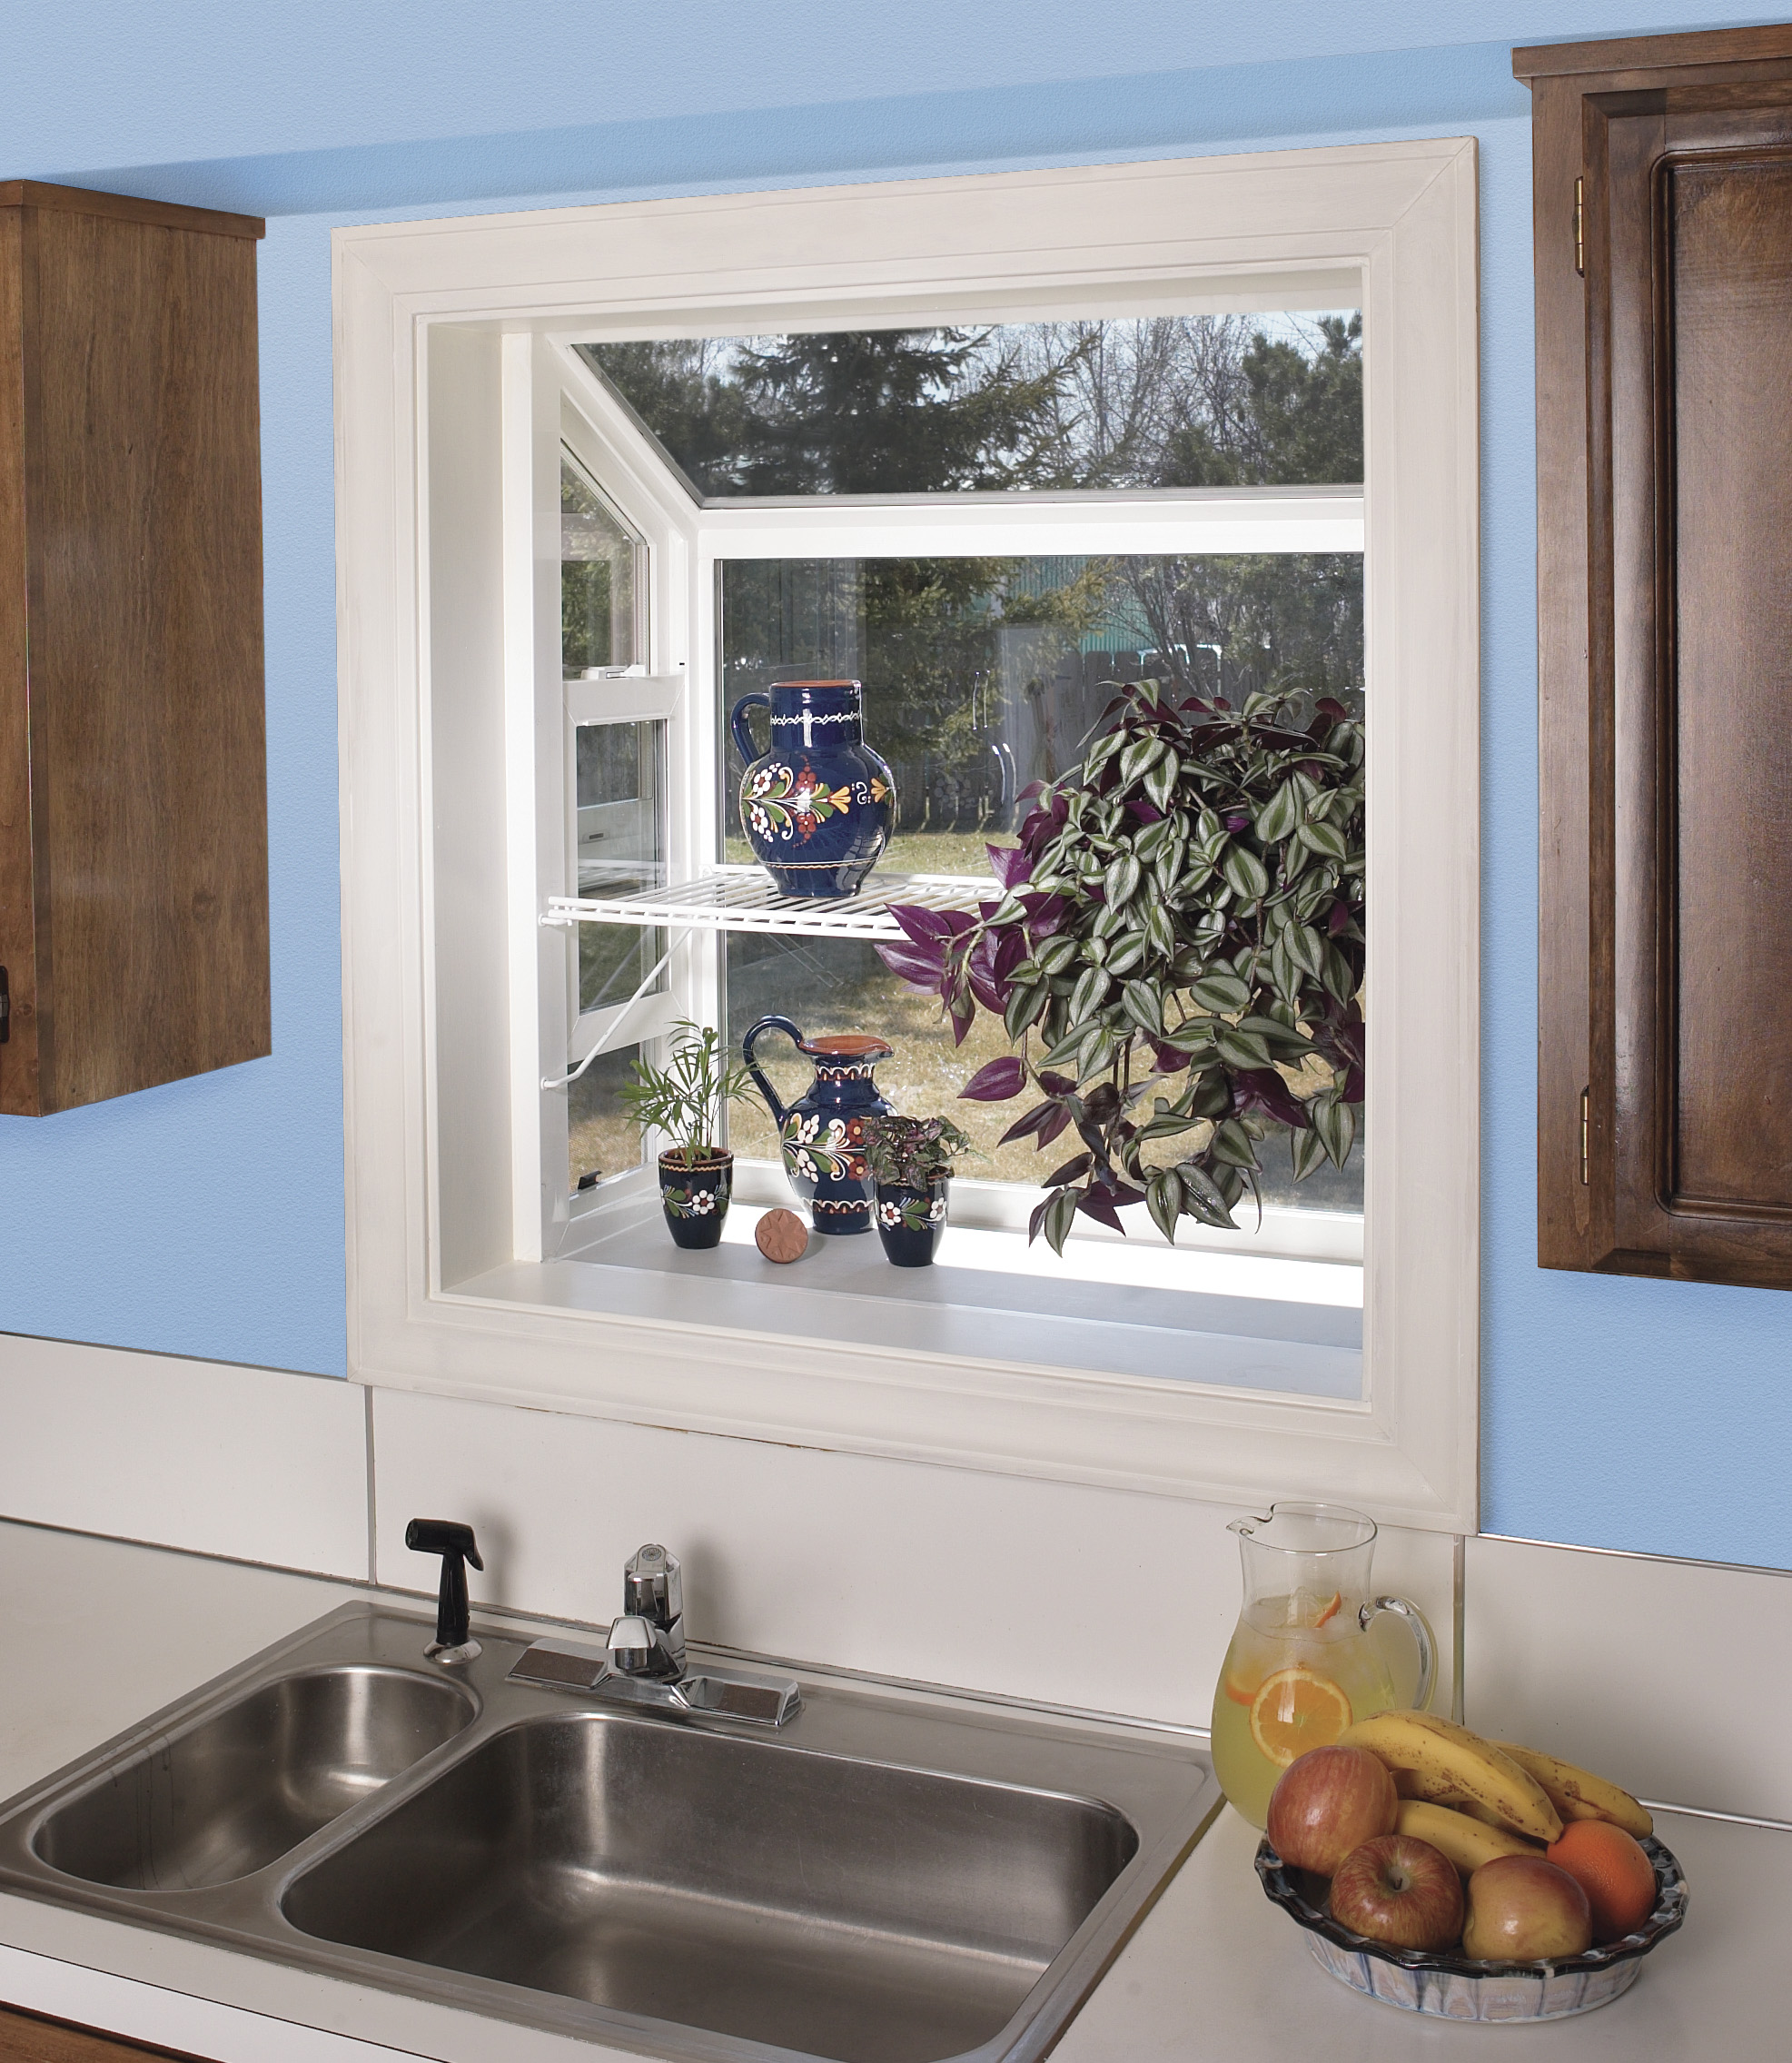 kitchen sink window ideas how to decorate garden windows for kitchens so that the 20028